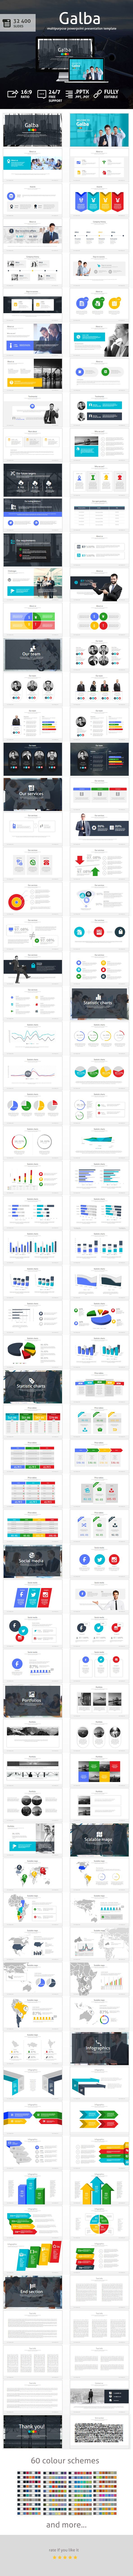 Galba Powerpoint Presentation Template. Download here: http://graphicriver.net/item/galba-powerpoint-presentation-template/15733836?ref=ksioks